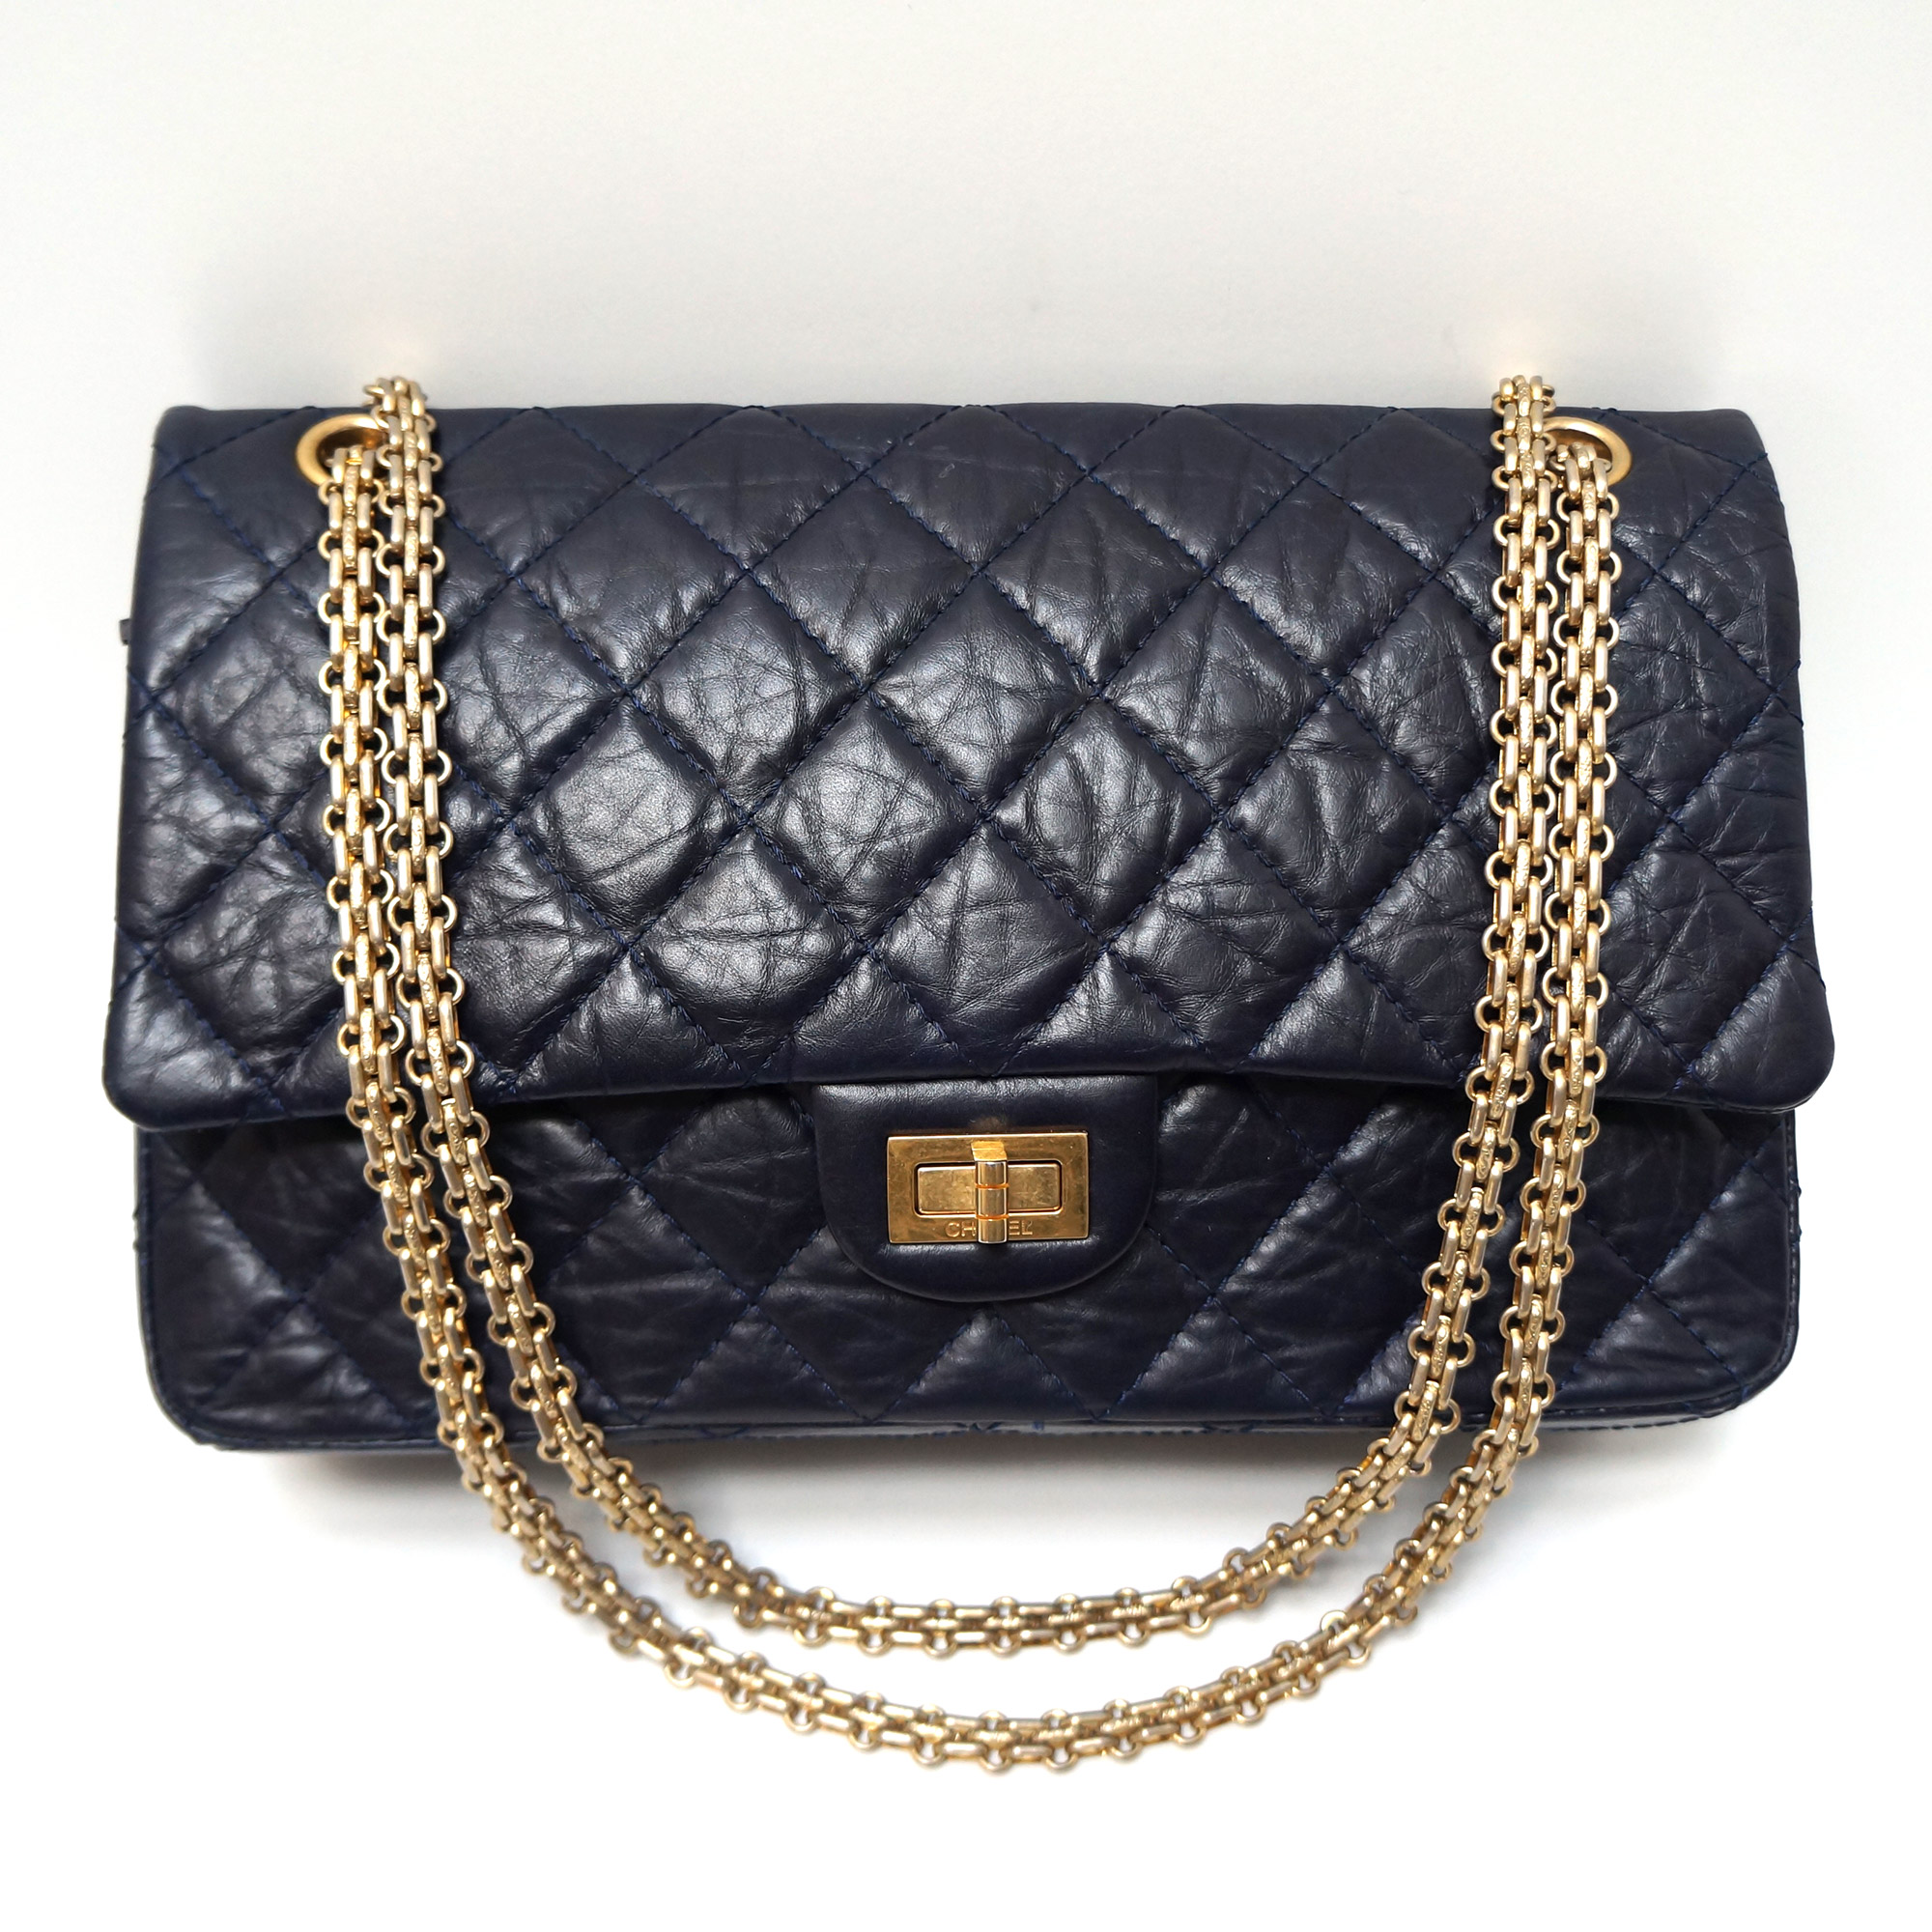 chanel reissue flap bag 226 navy aged leather gold hardware my personal shoppers. Black Bedroom Furniture Sets. Home Design Ideas